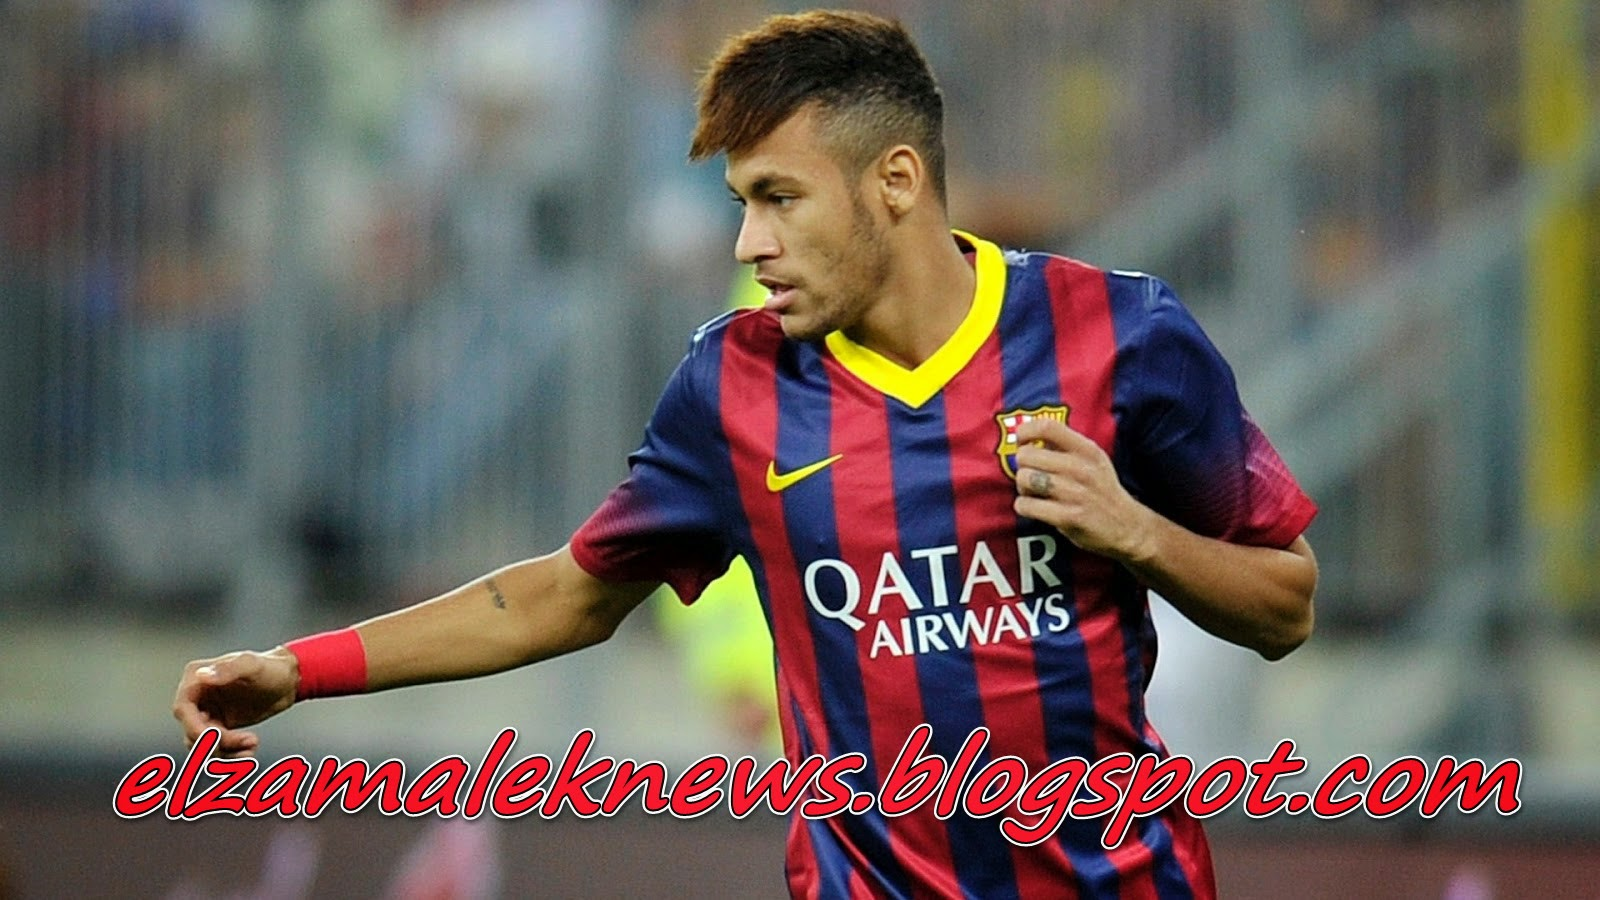 Nymar Brazilian striker of Barcelona